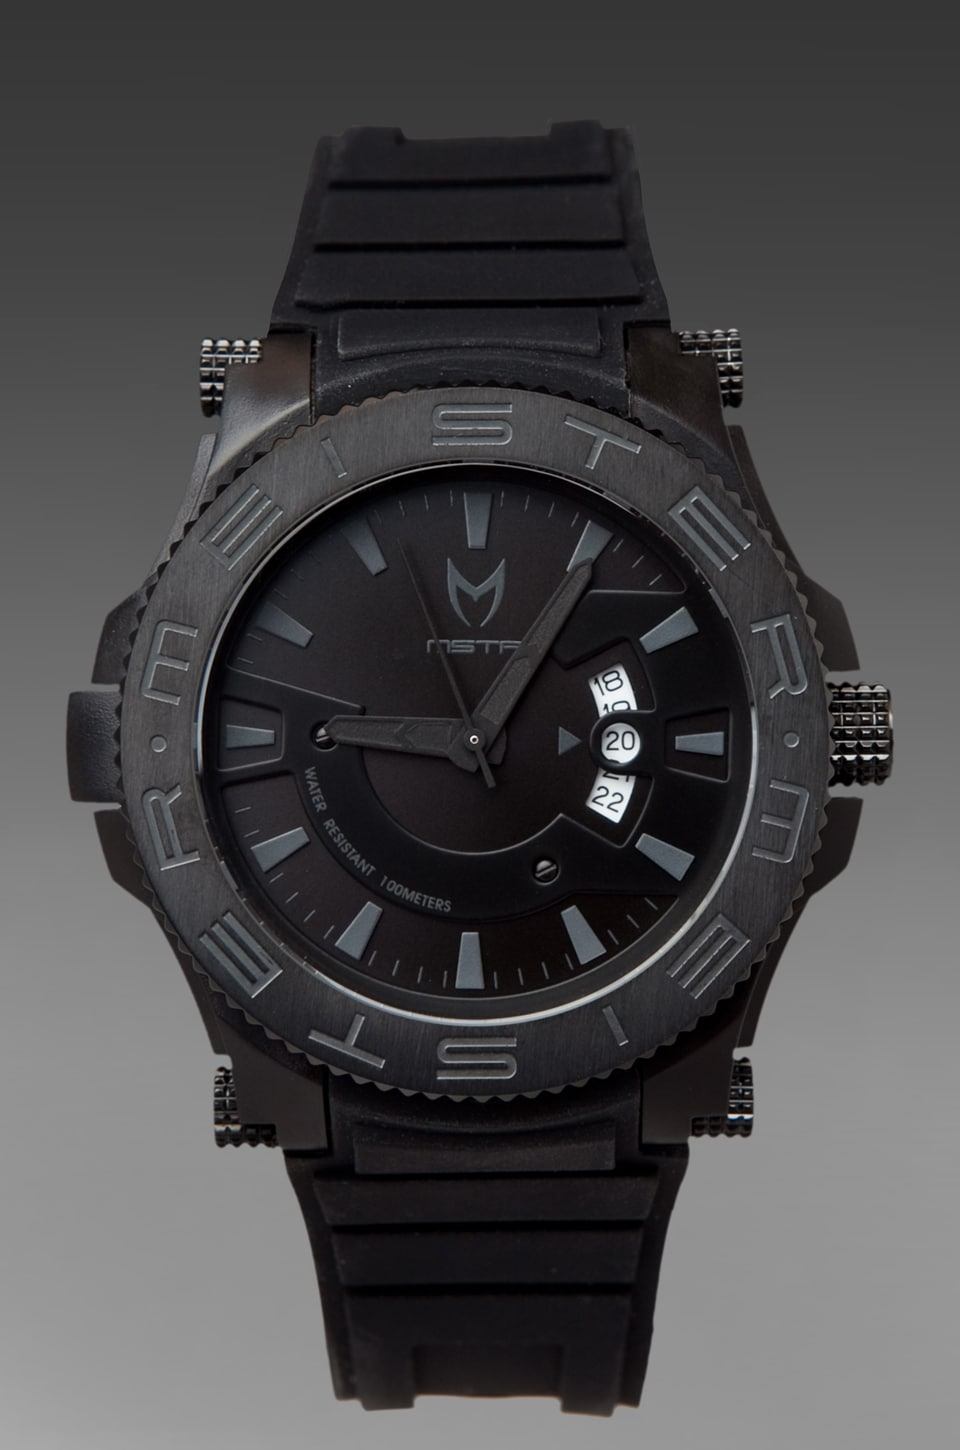 Meister Prodigy in Black